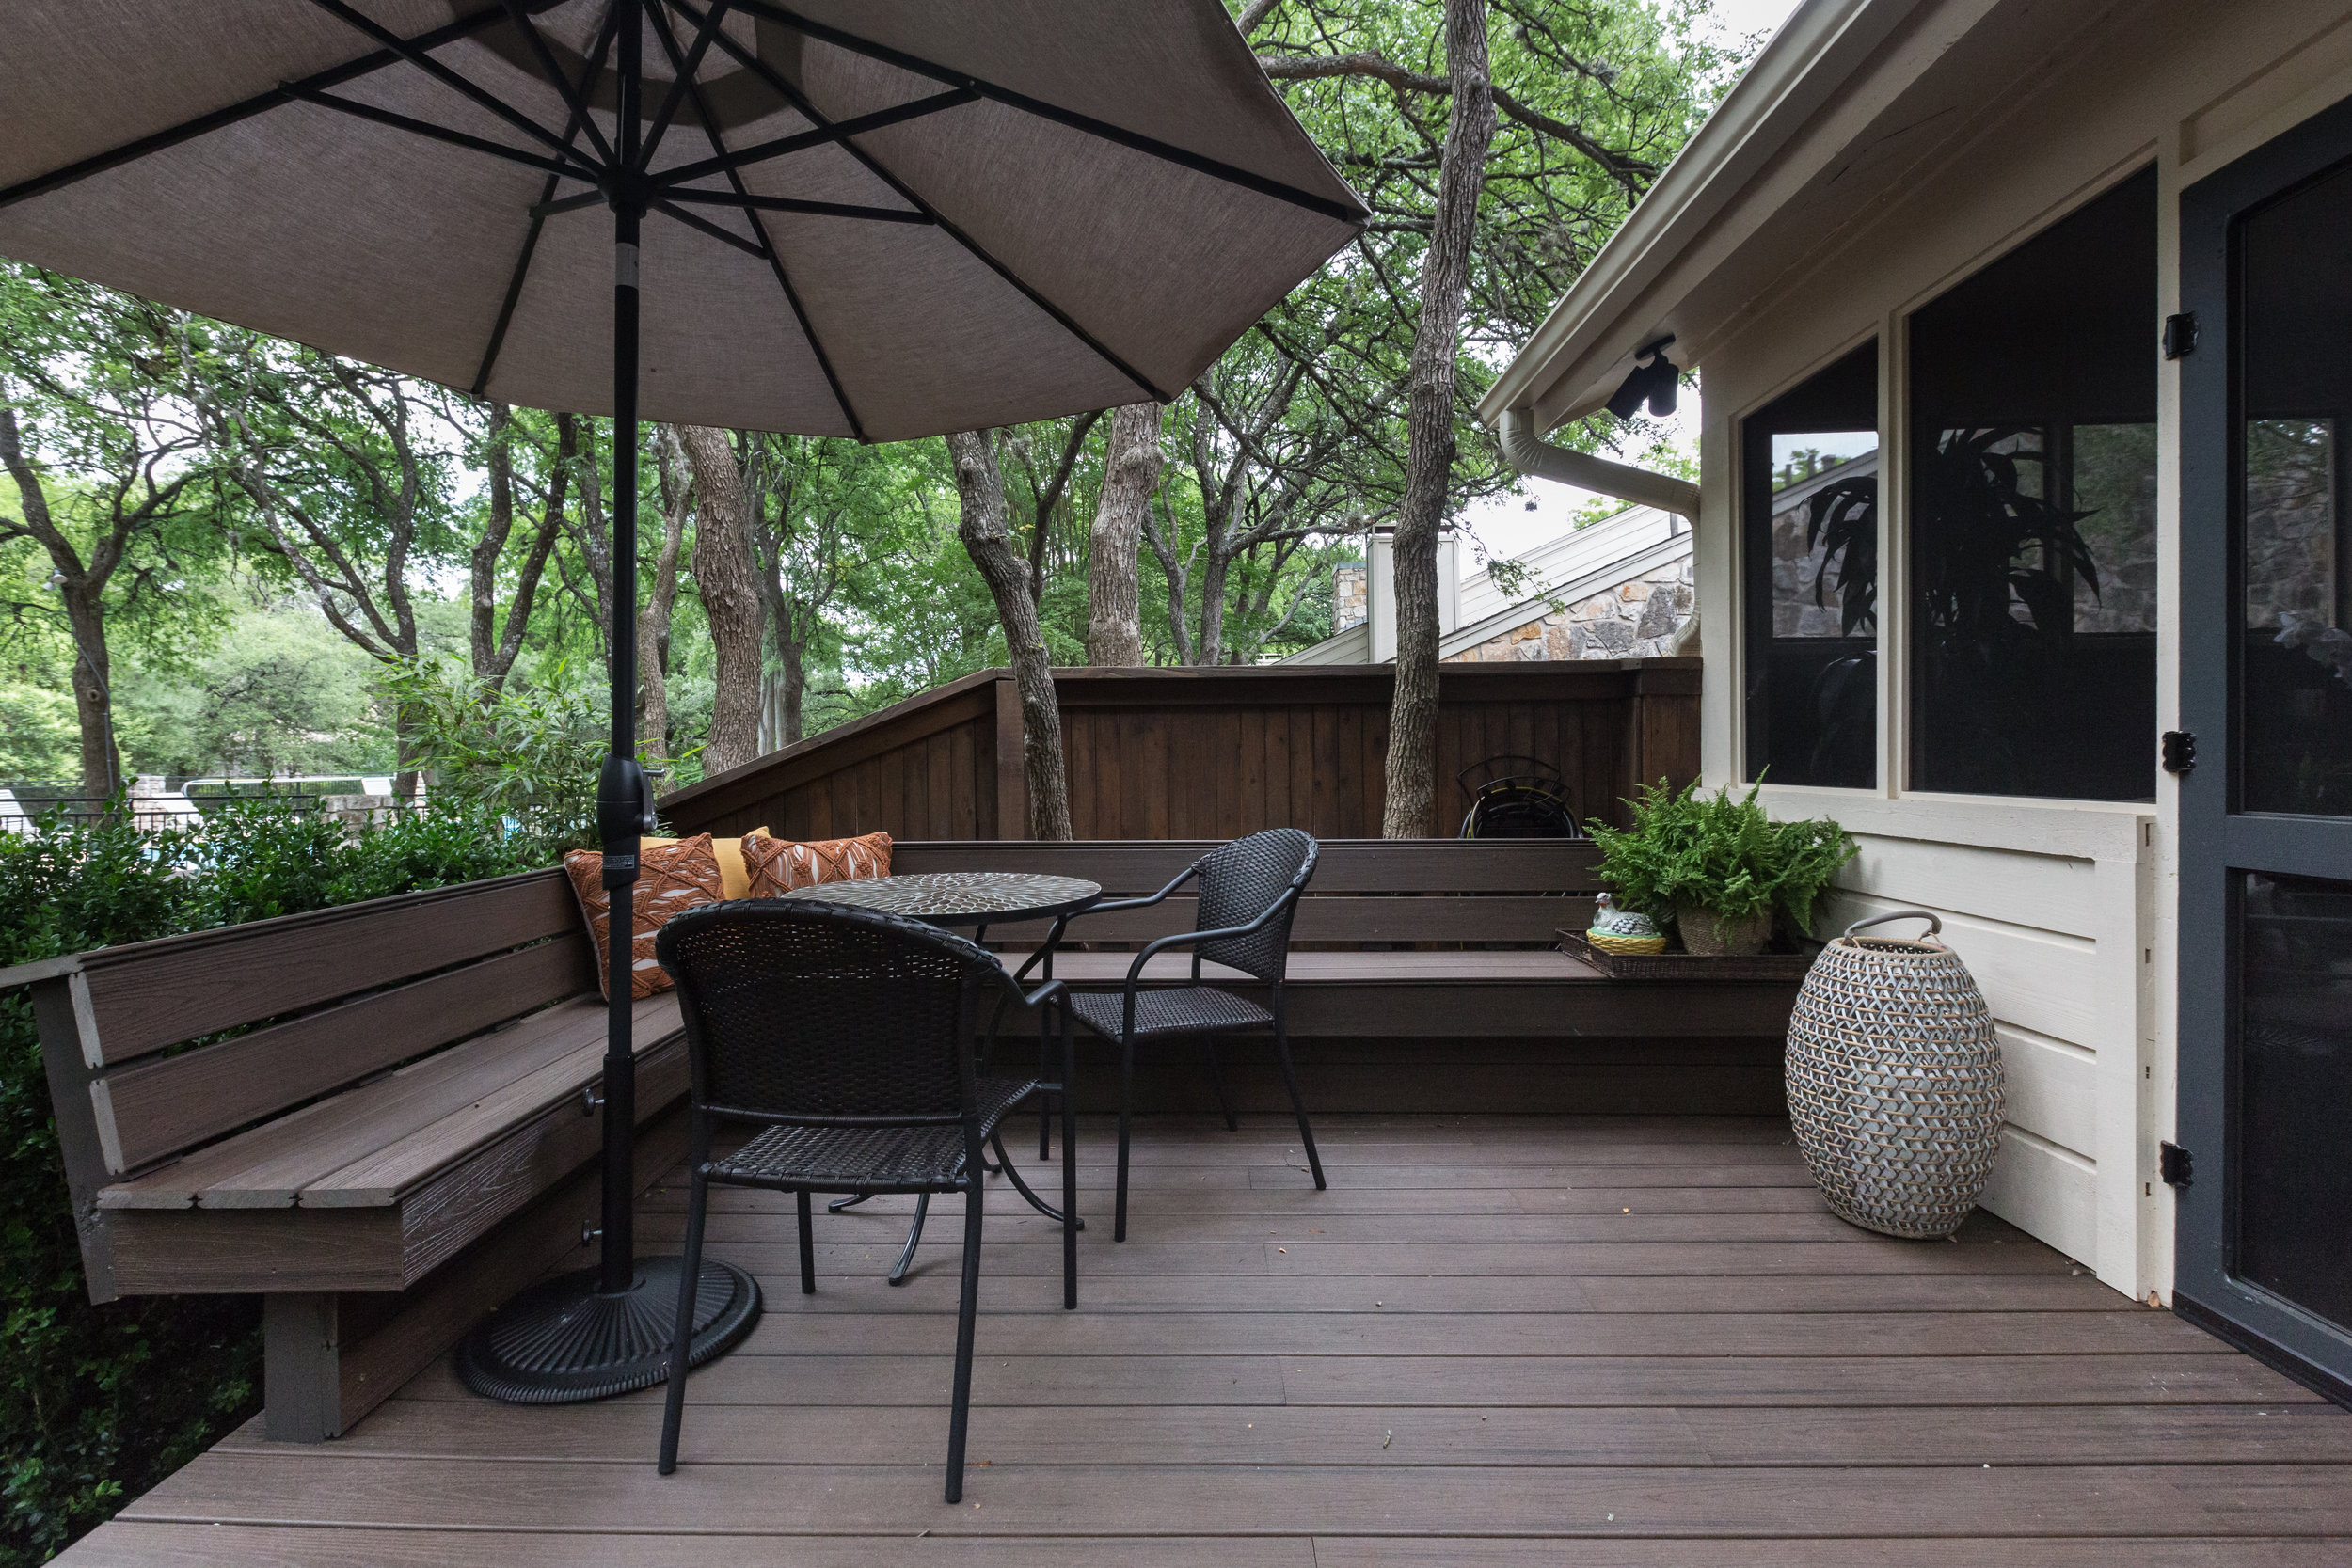 New deck with plenty of seating in backyard of renovated condominium